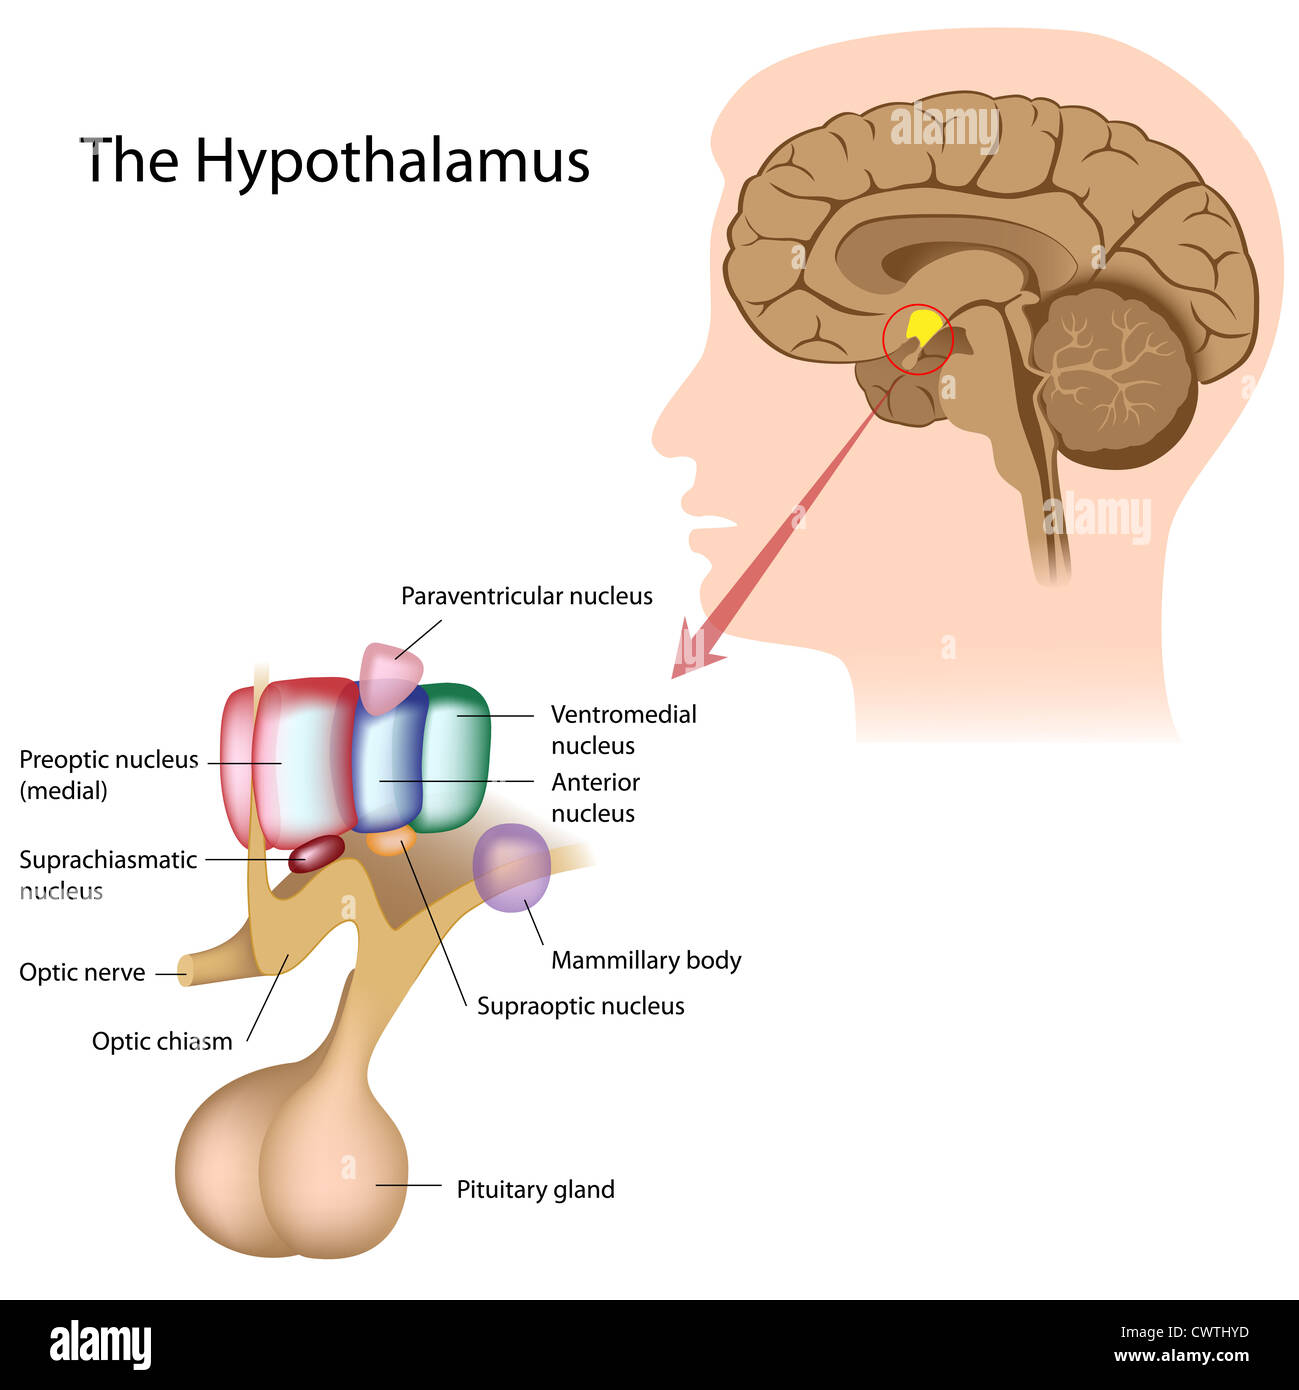 The nuclei of the hypothalamus - Stock Image